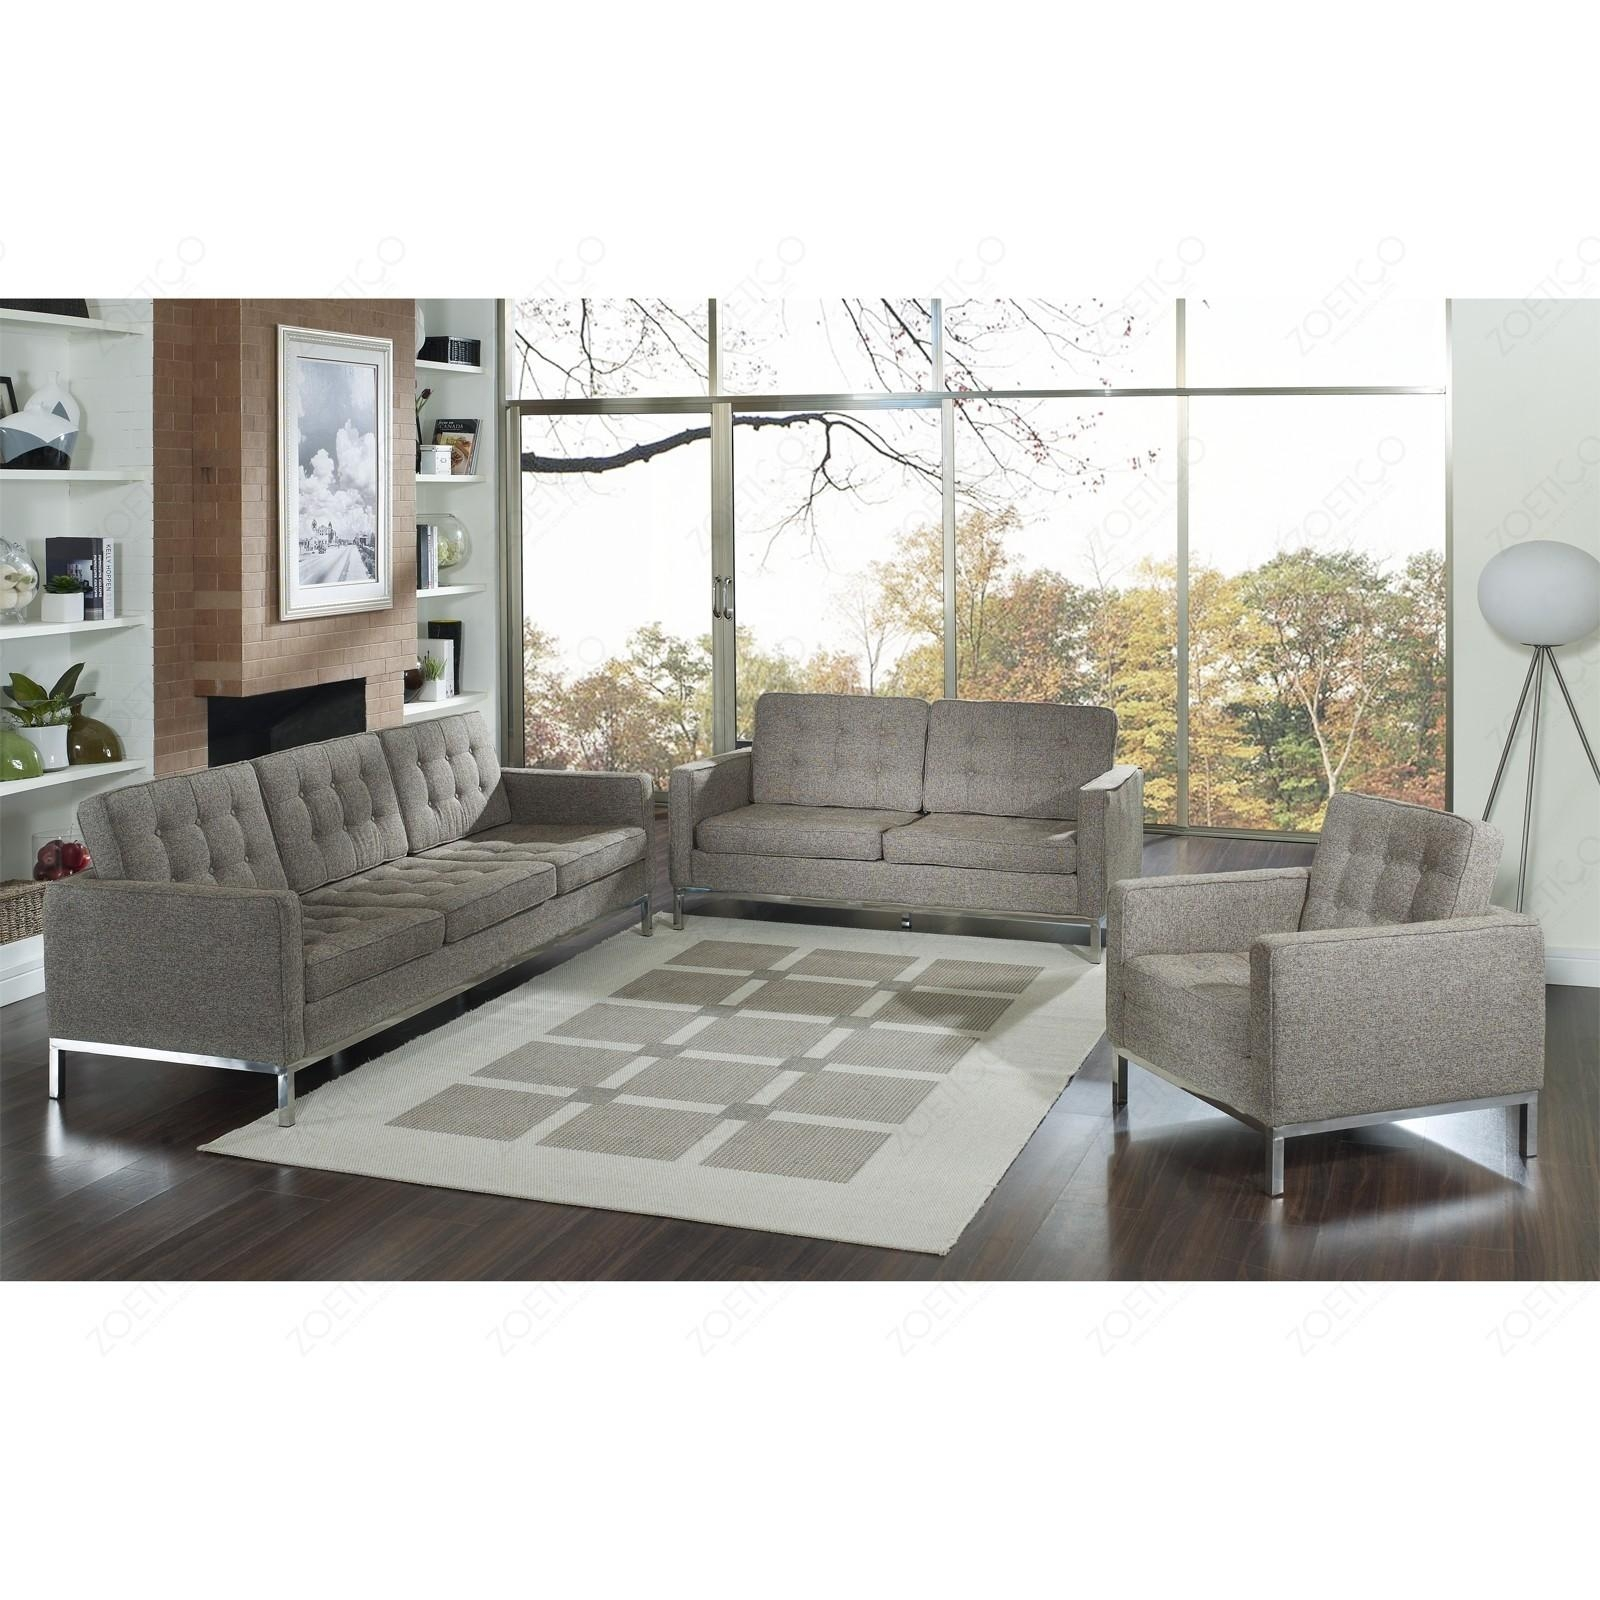 Florence Knoll Sofa With Regard To Florence Knoll Fabric Sofas (View 4 of 20)